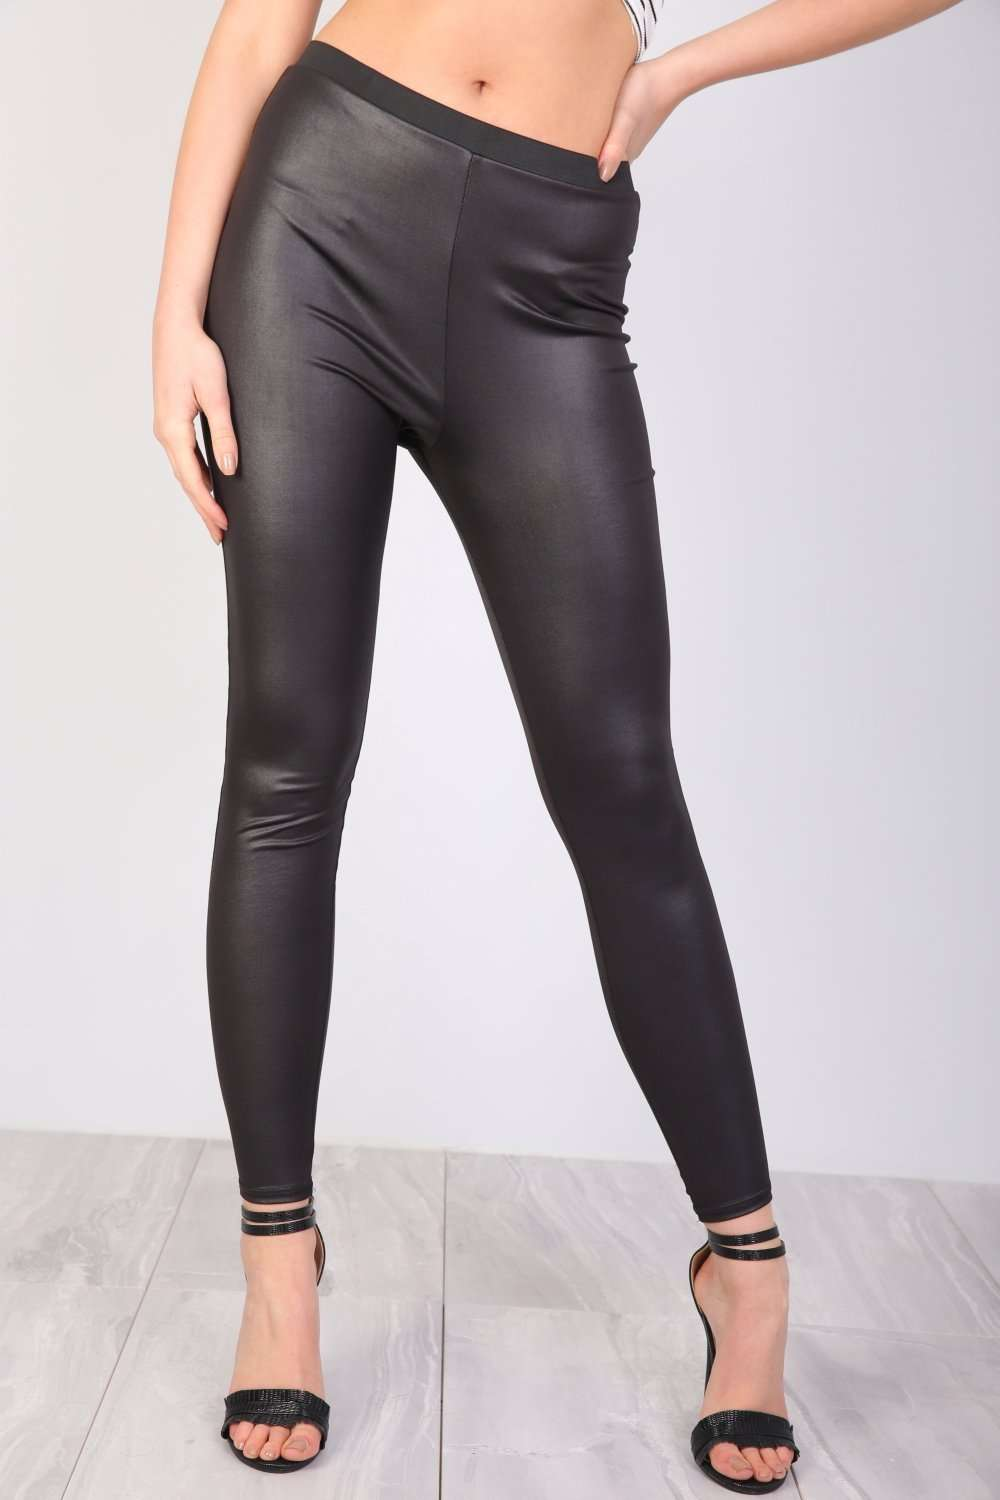 Gina High Waist Wet Look Leggings - bejealous-com